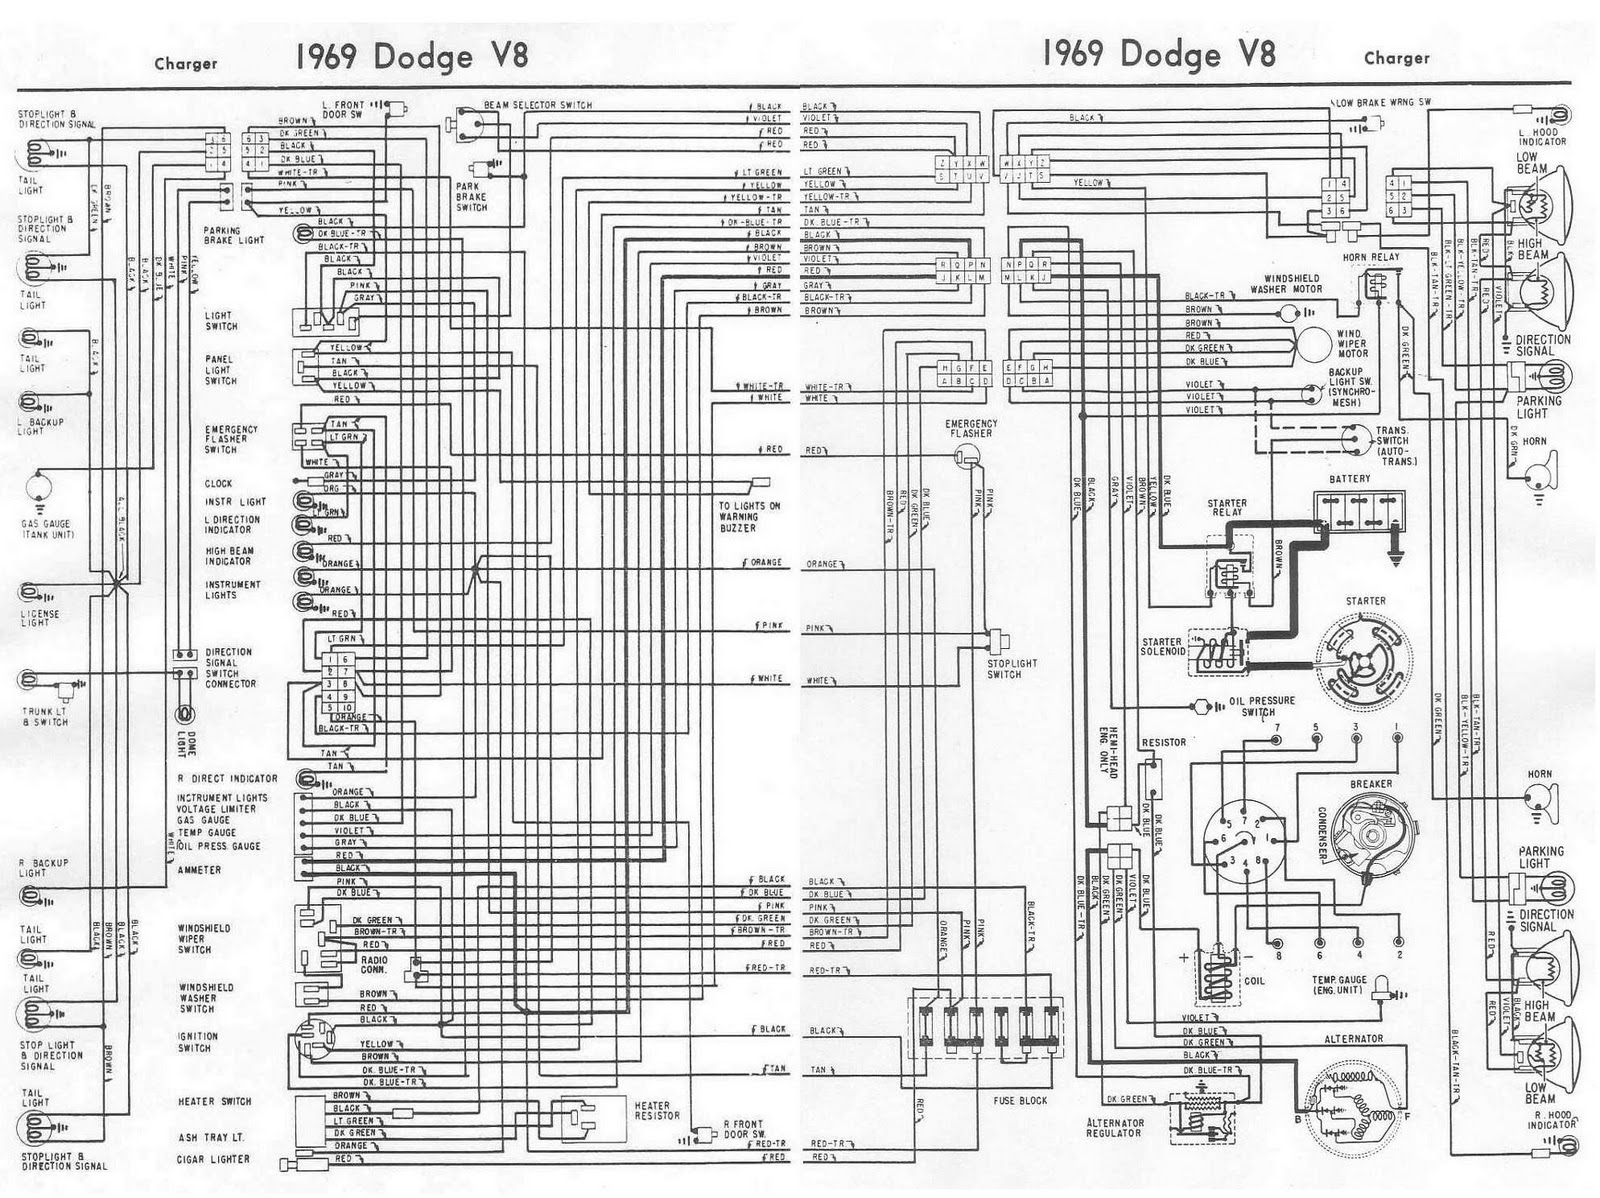 dodge charger 1969 v8 complete electrical wiring diagram 2012 dodge charger police package wiring diagram 2012 dodge charger police package wiring diagram [ 1600 x 1198 Pixel ]